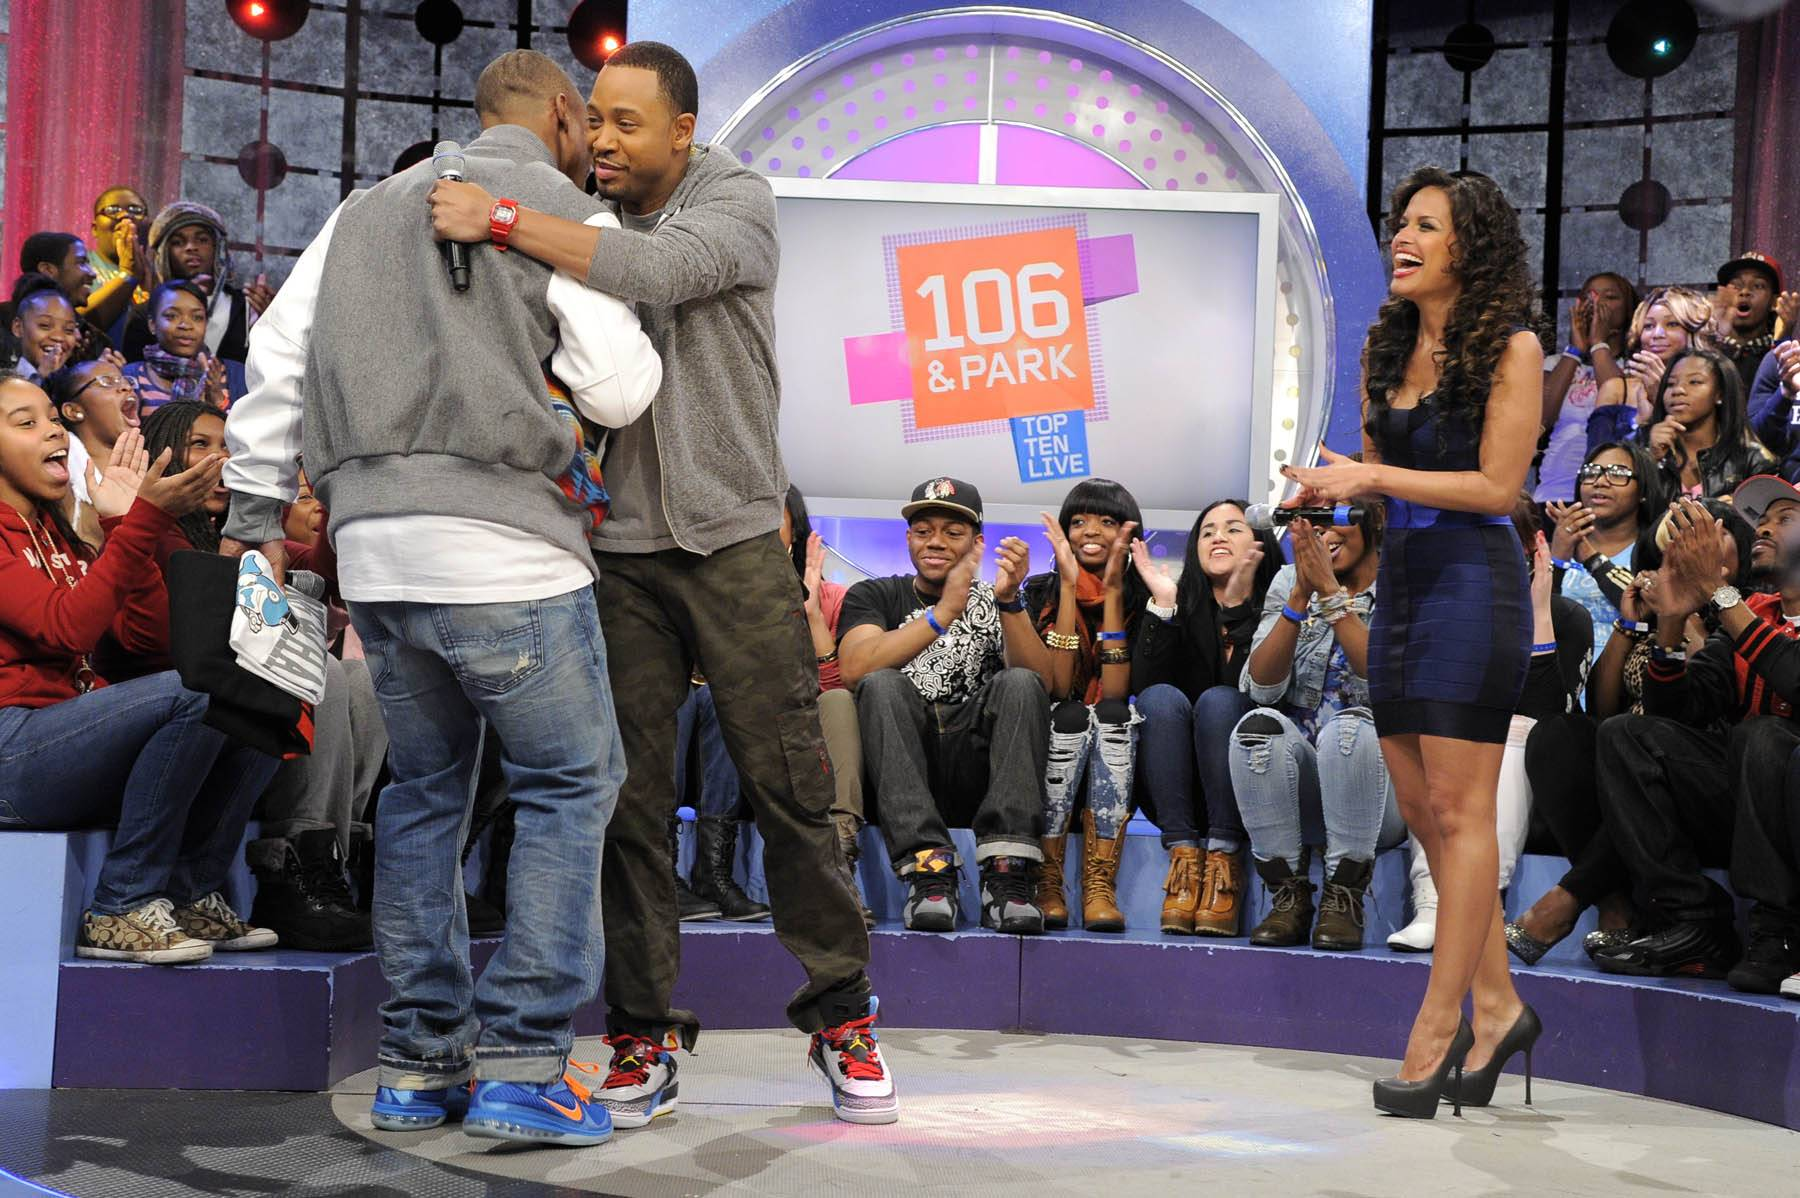 Show Me Love - NY Giants wide receiver Victor Cruz takes the stage at 106 & Park, January 26, 2012. (Photo: John Ricard / BET)